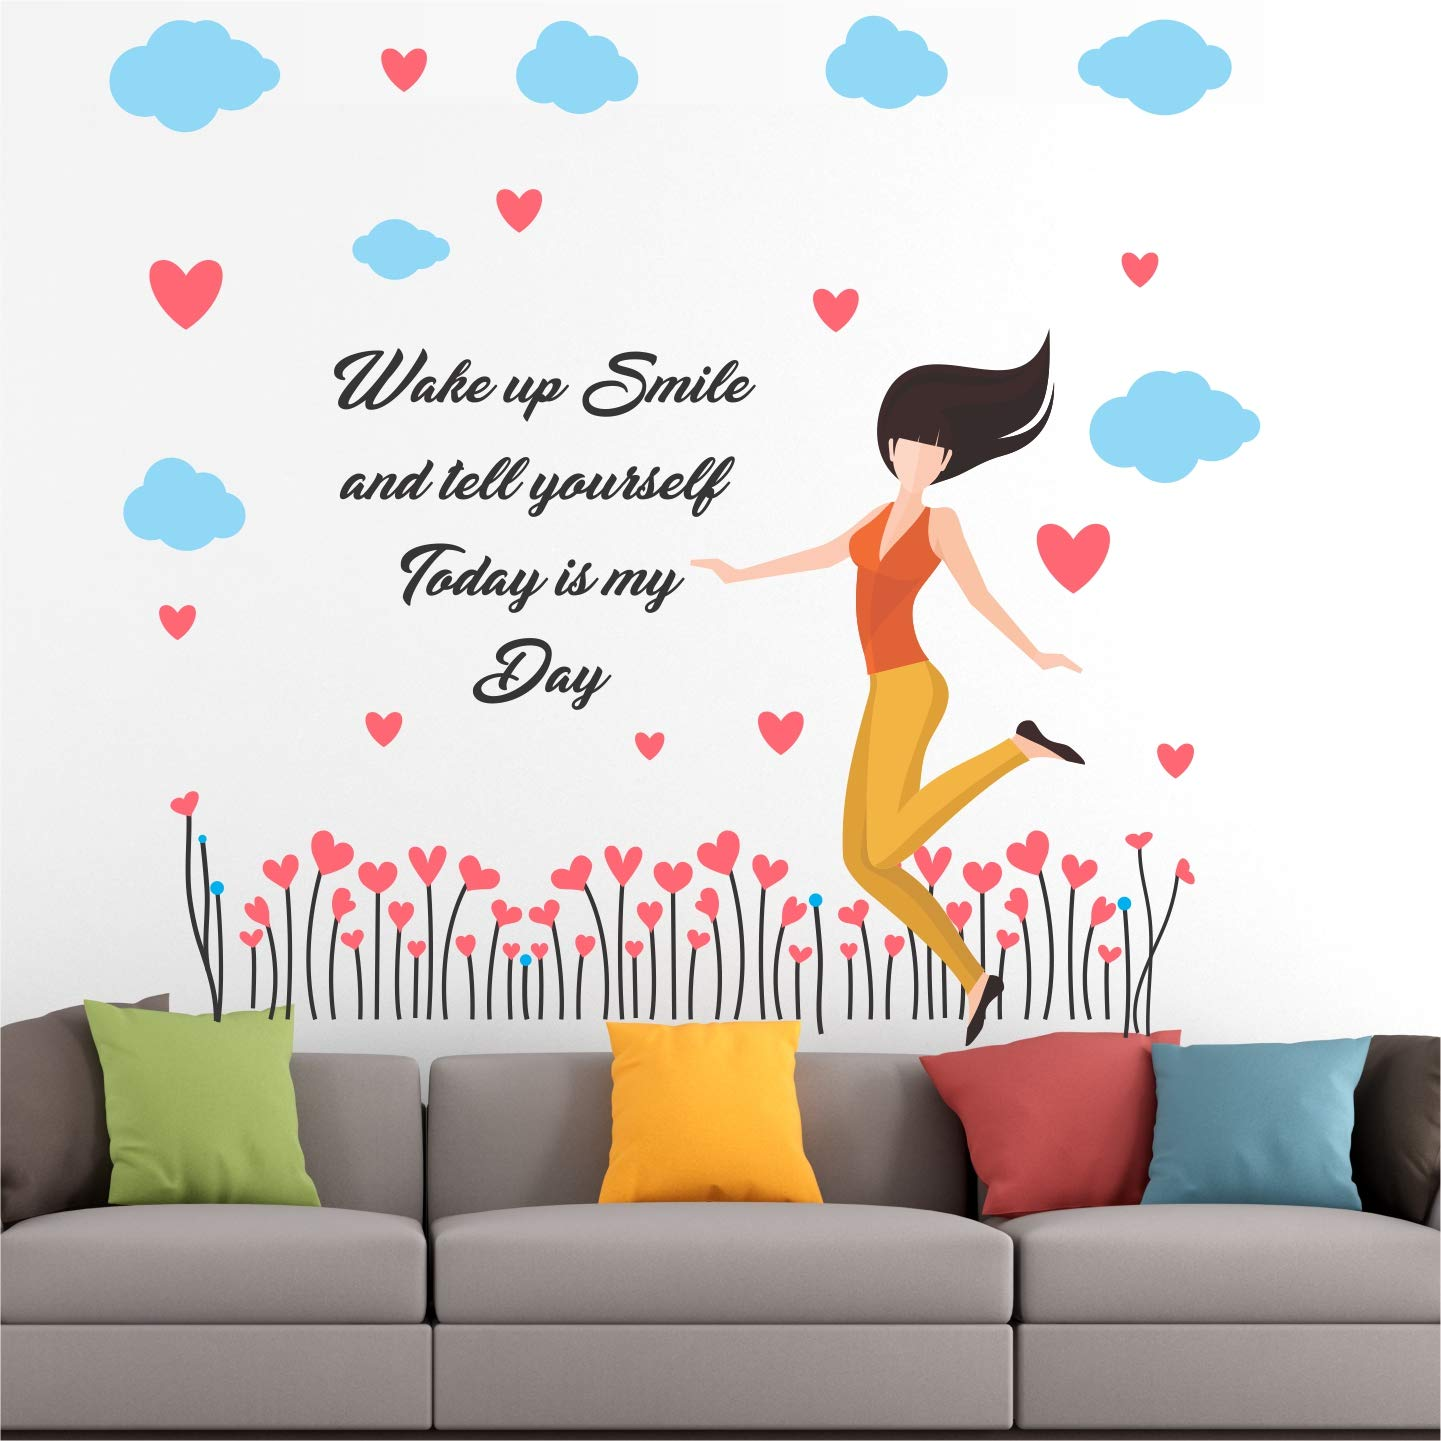 Buy Babeehive Beautiful Girl Hearts Inspirational Motivational Quotes Wall Sticker Bh043 Pvc Vinyl 120cm X 120 Cm Online At Low Prices In India Amazon In